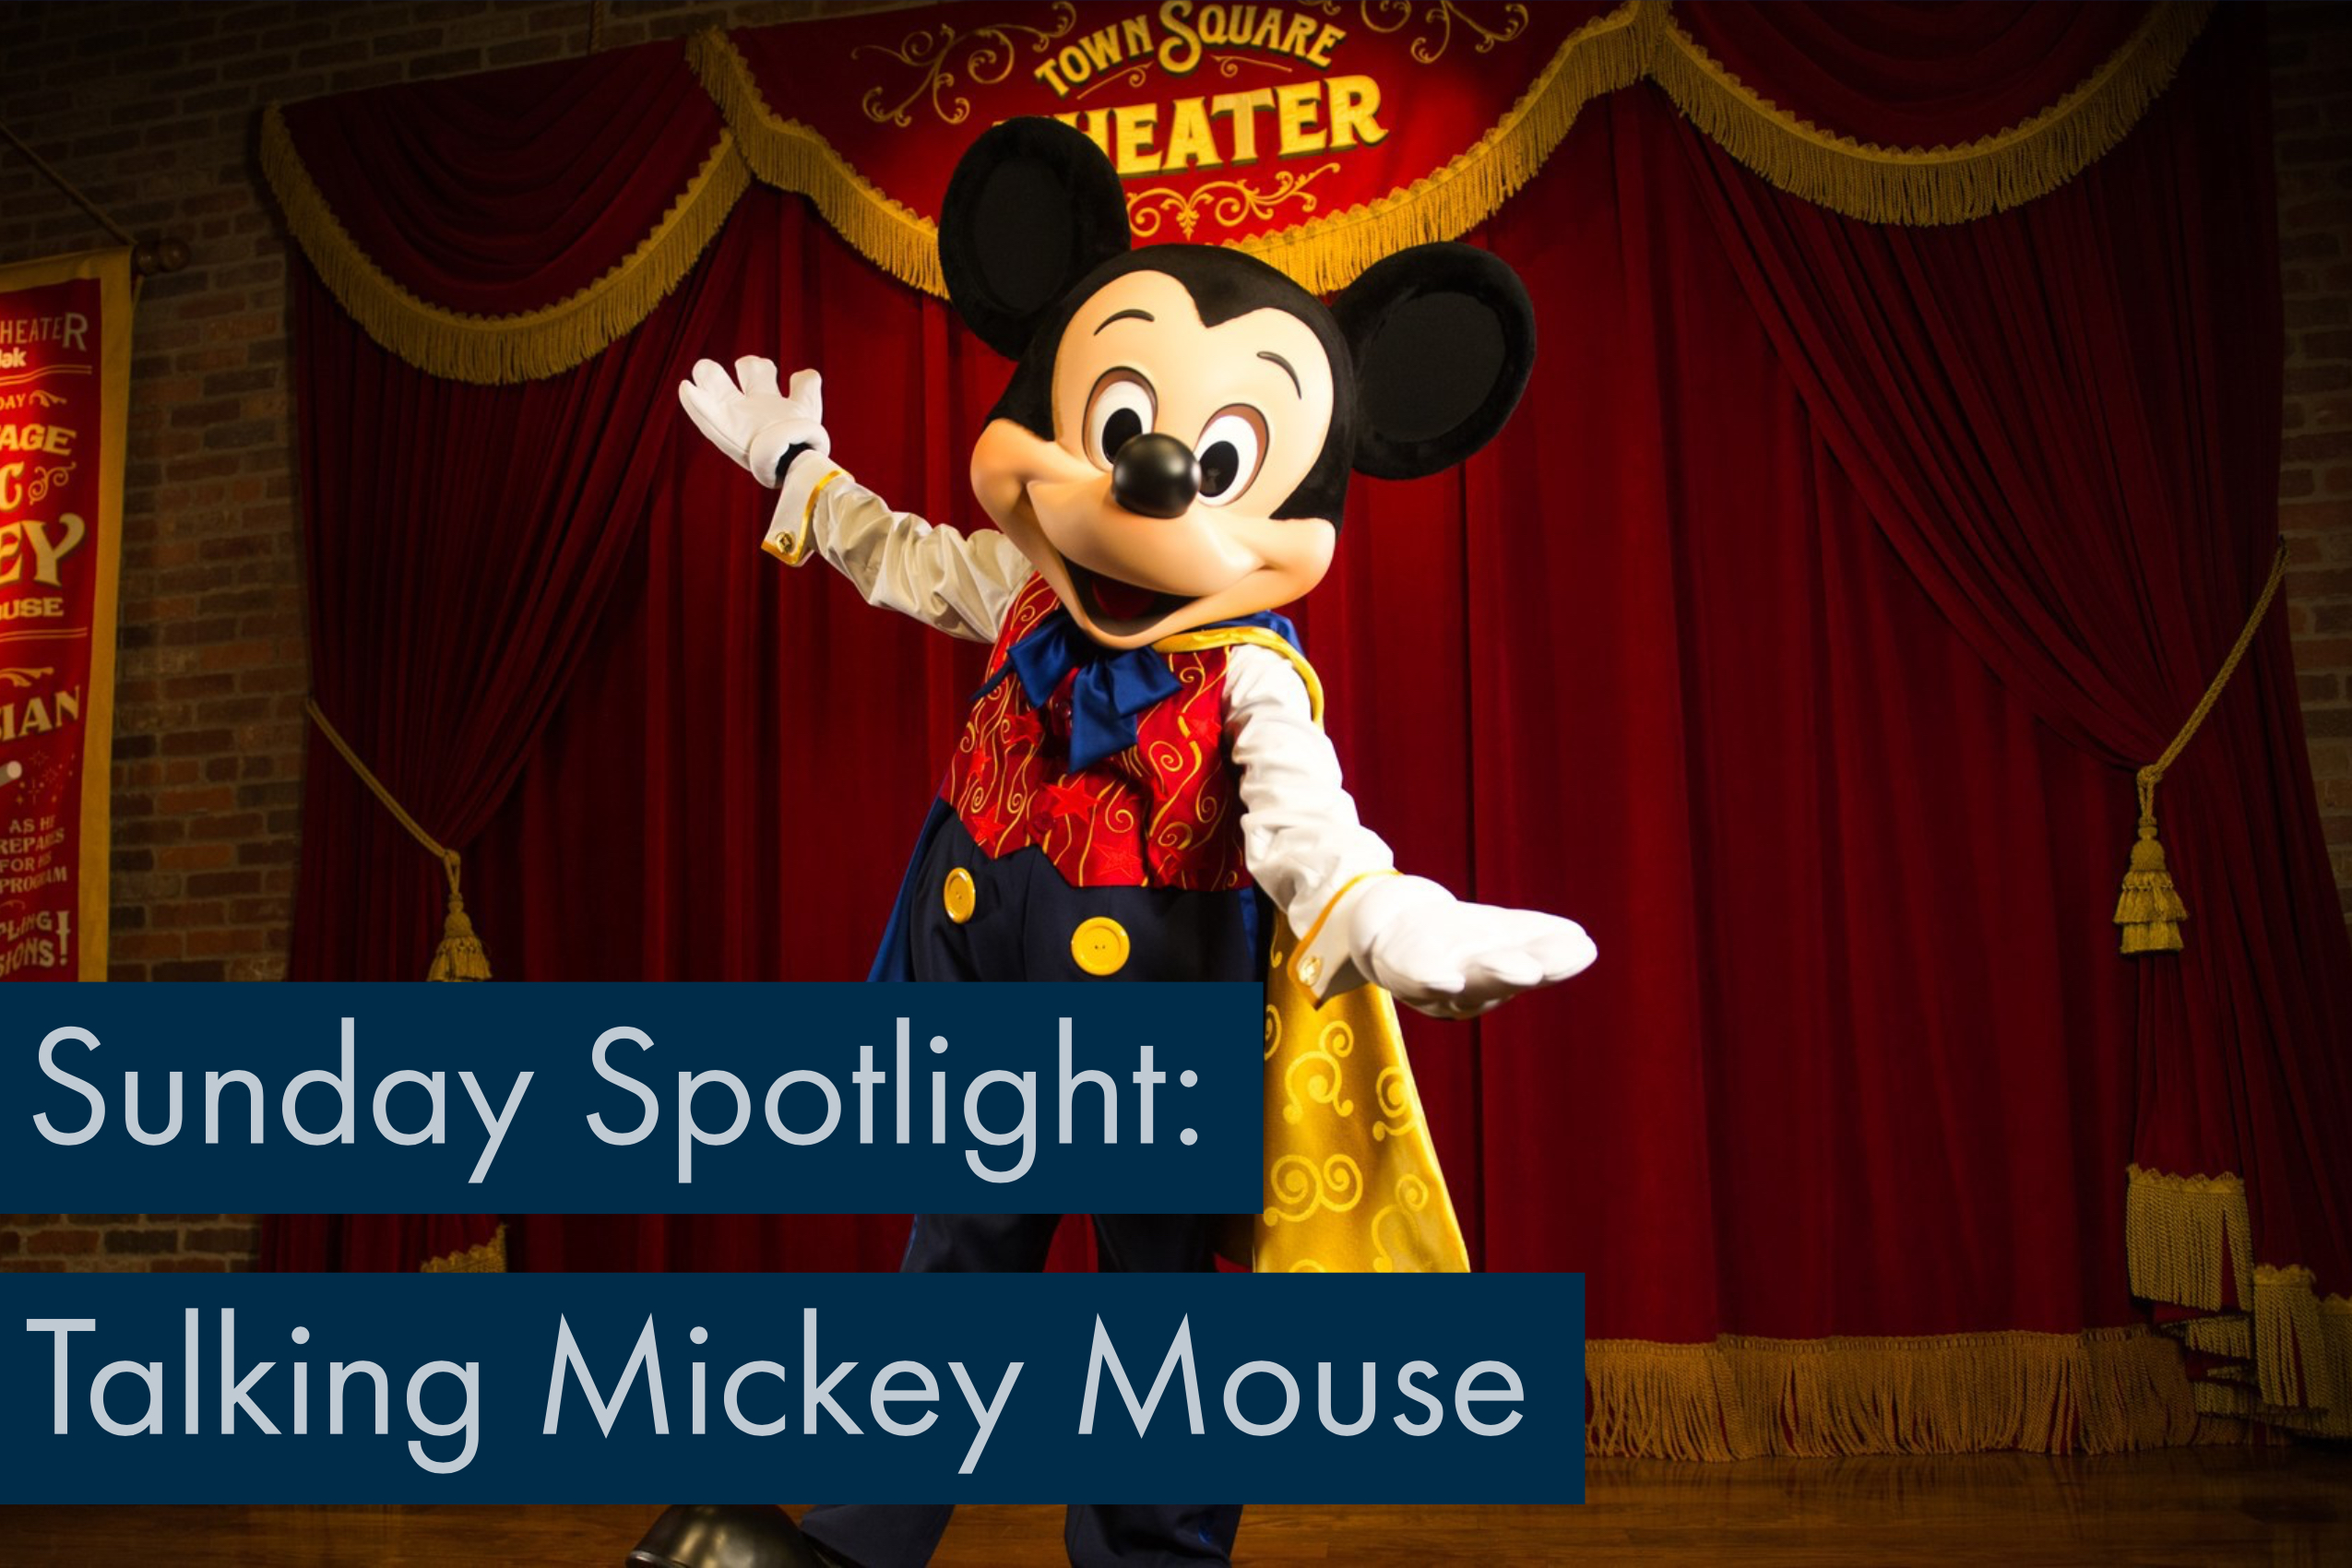 Sunday Spotlight: Talking Mickey Mouse